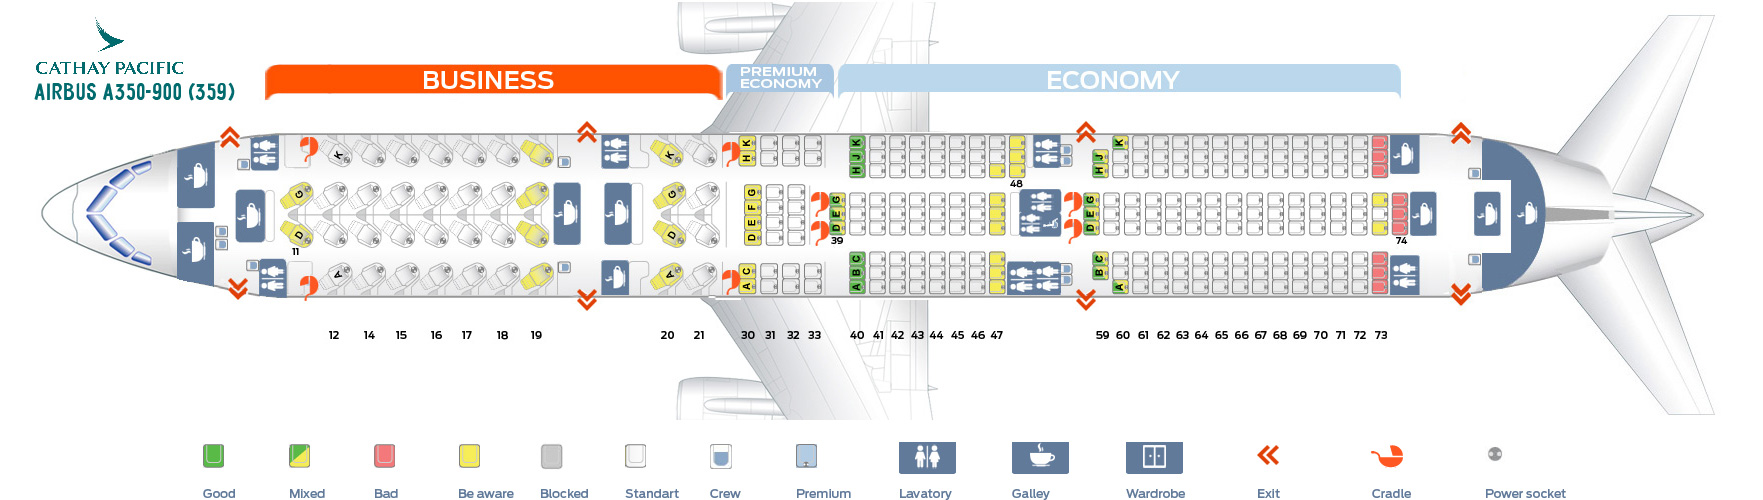 A350 Seat Map Seat map Airbus A350 900 Cathay Pacific. Best seats in the plane